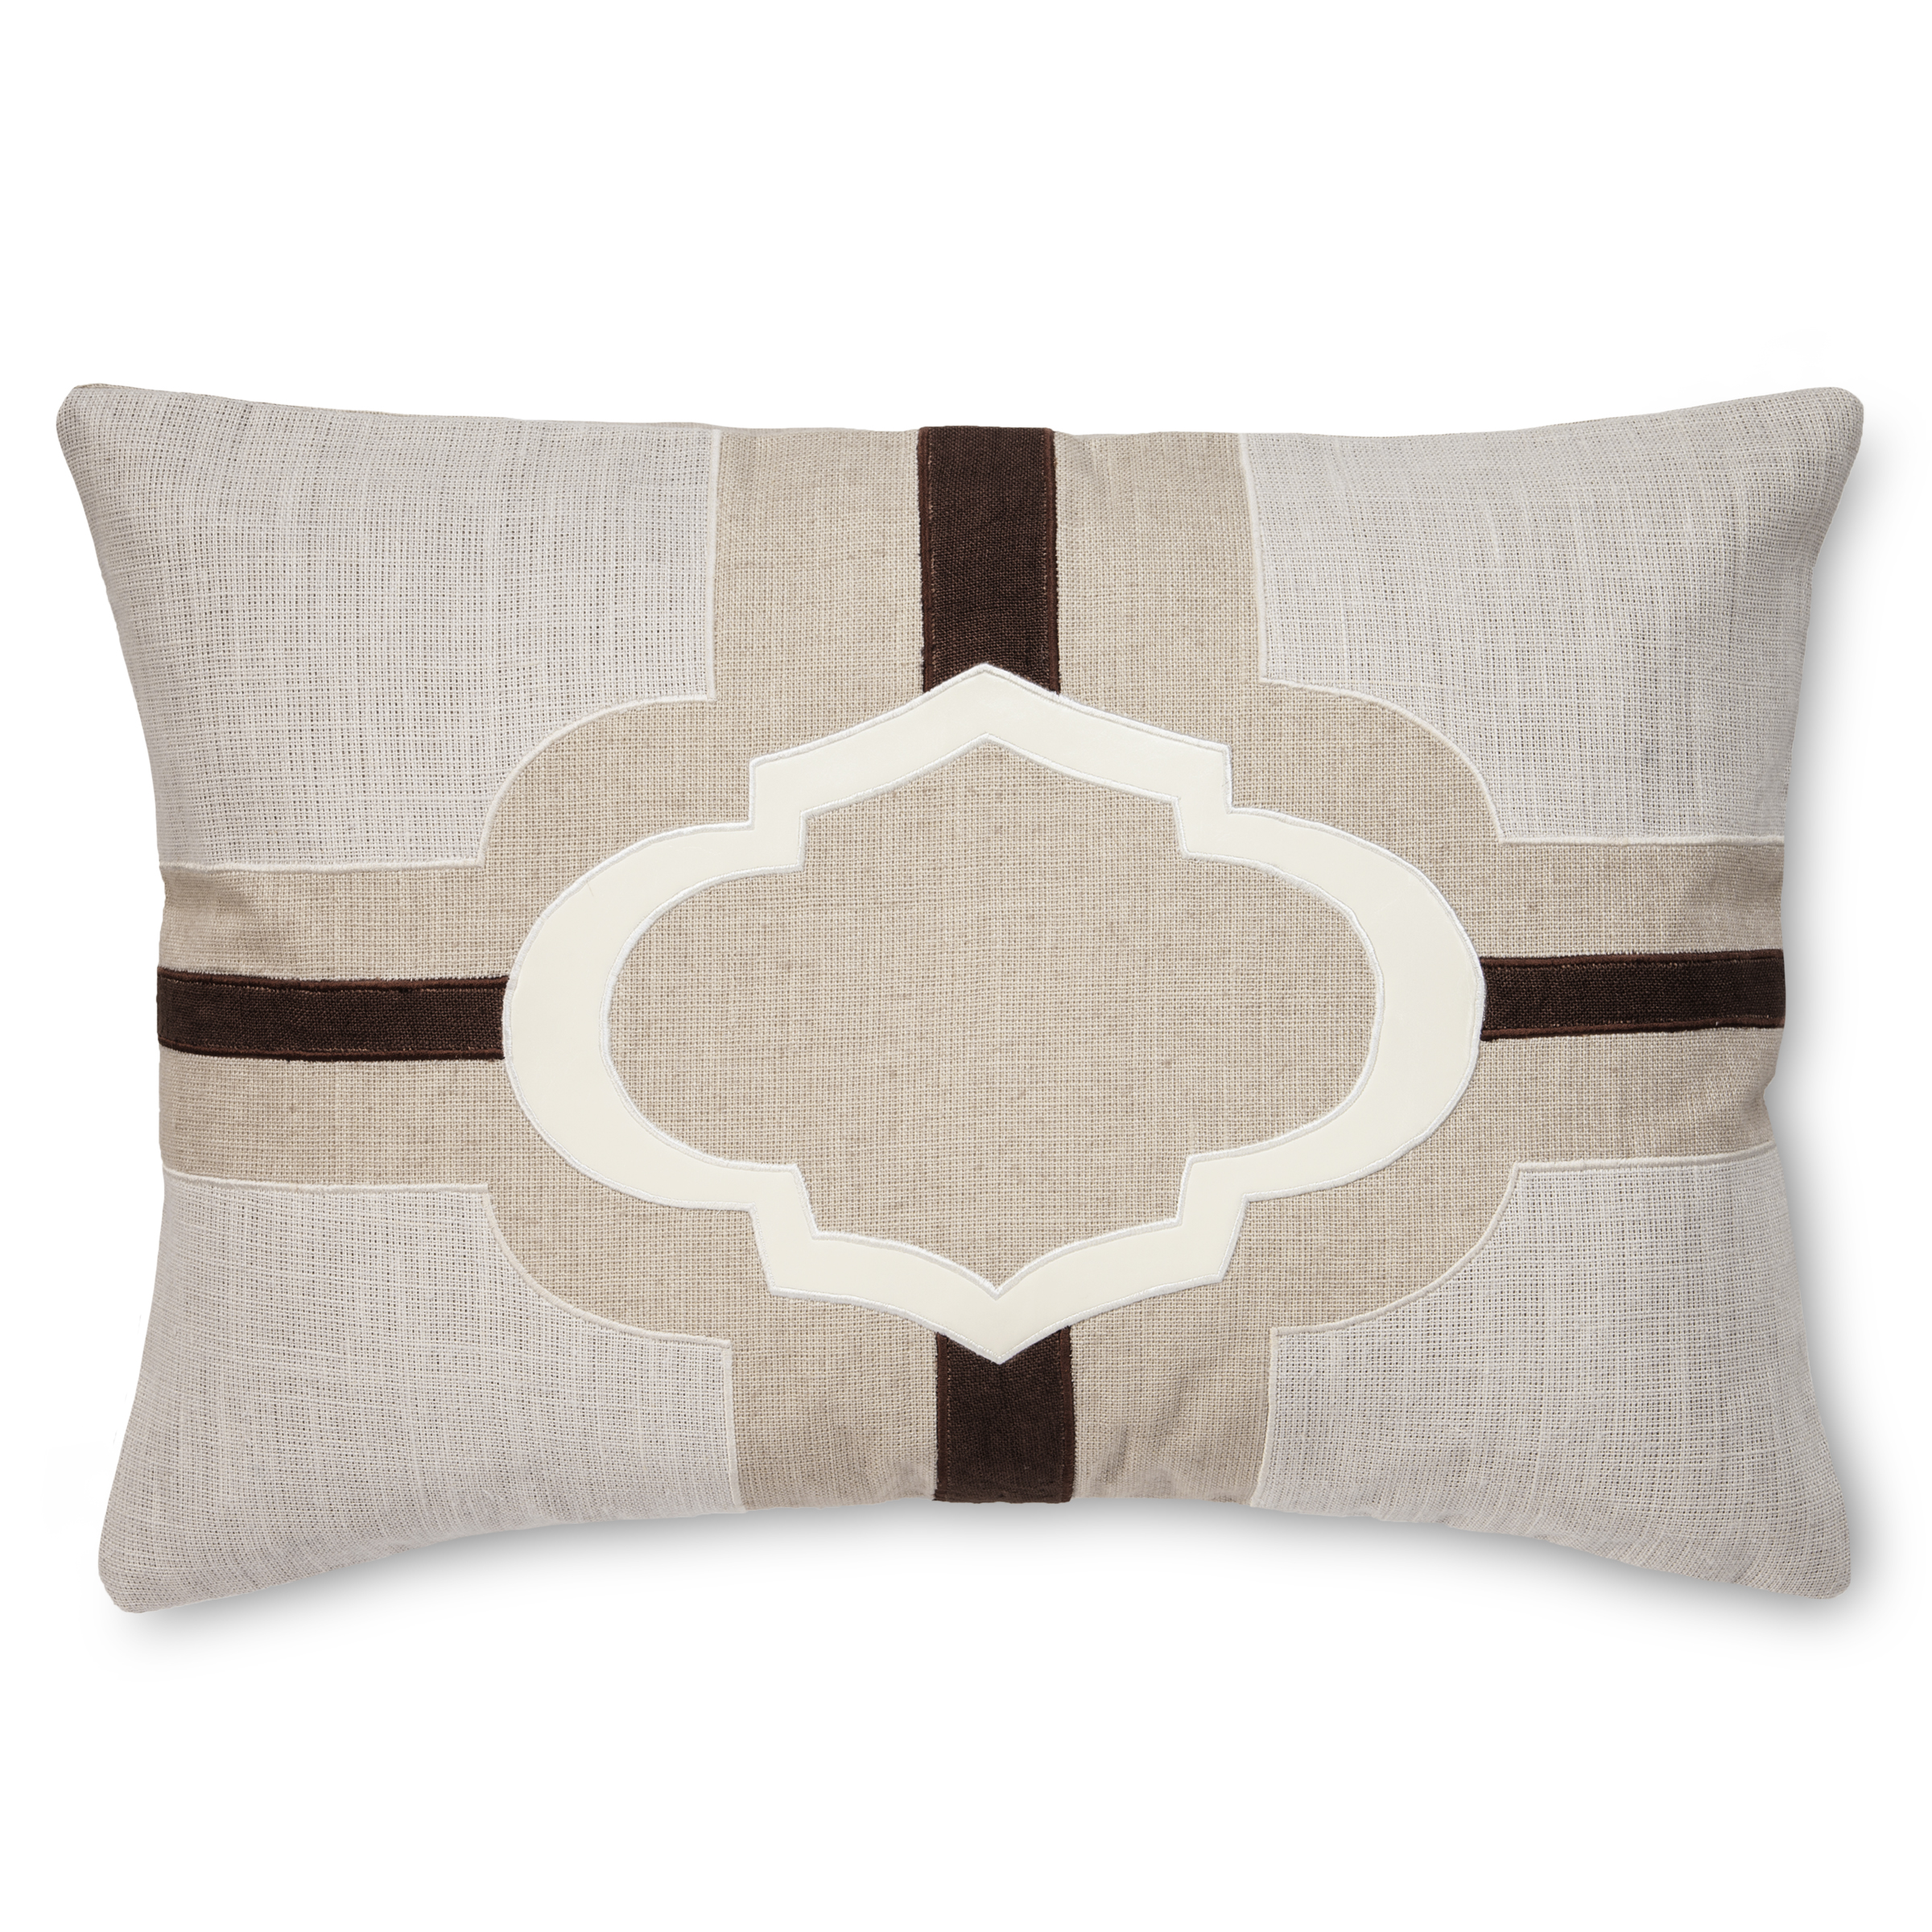 Pulp Home - Sophia Pillow